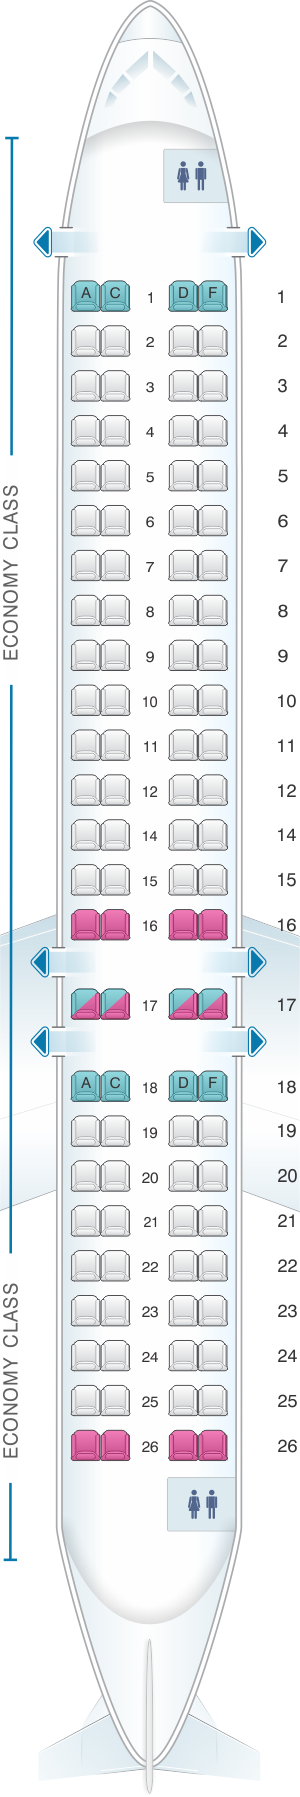 Seat map for HOP! CRJ 1000